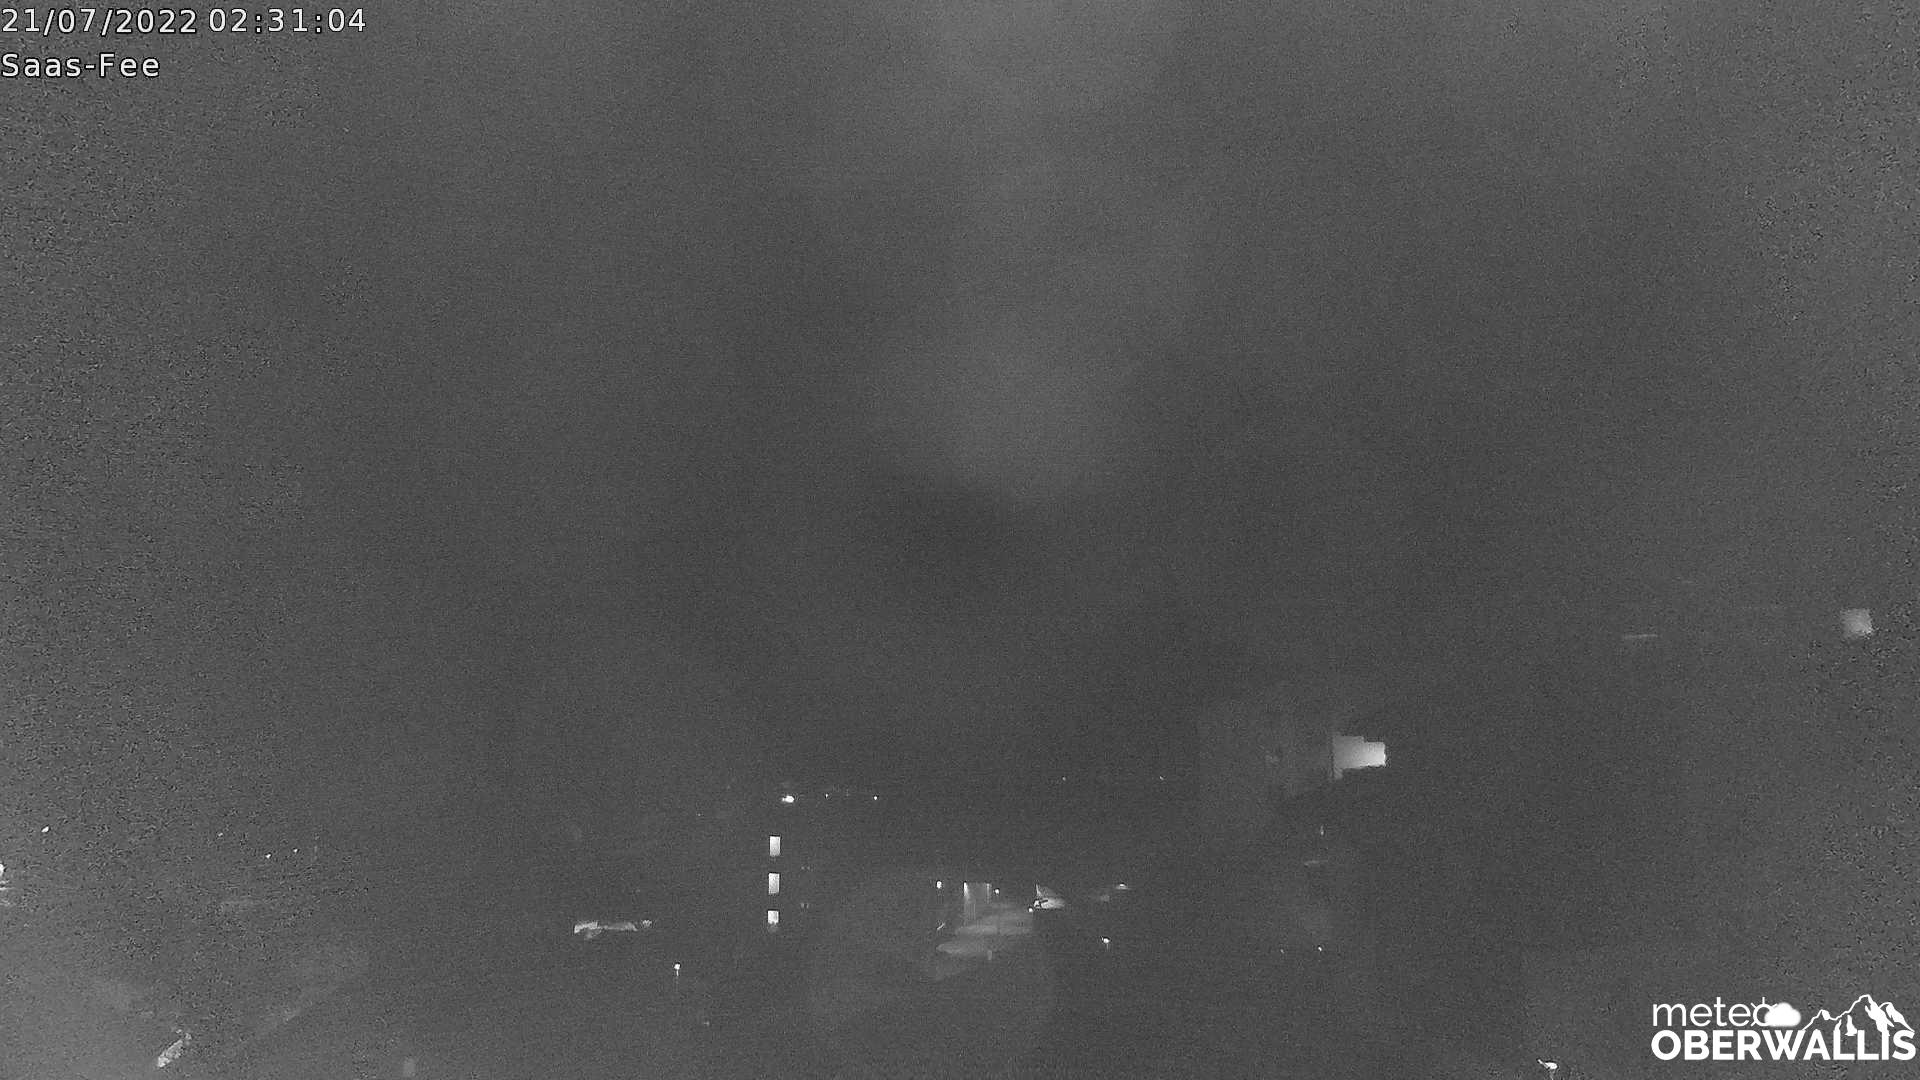 Webcam <br><span> saas fee</span>